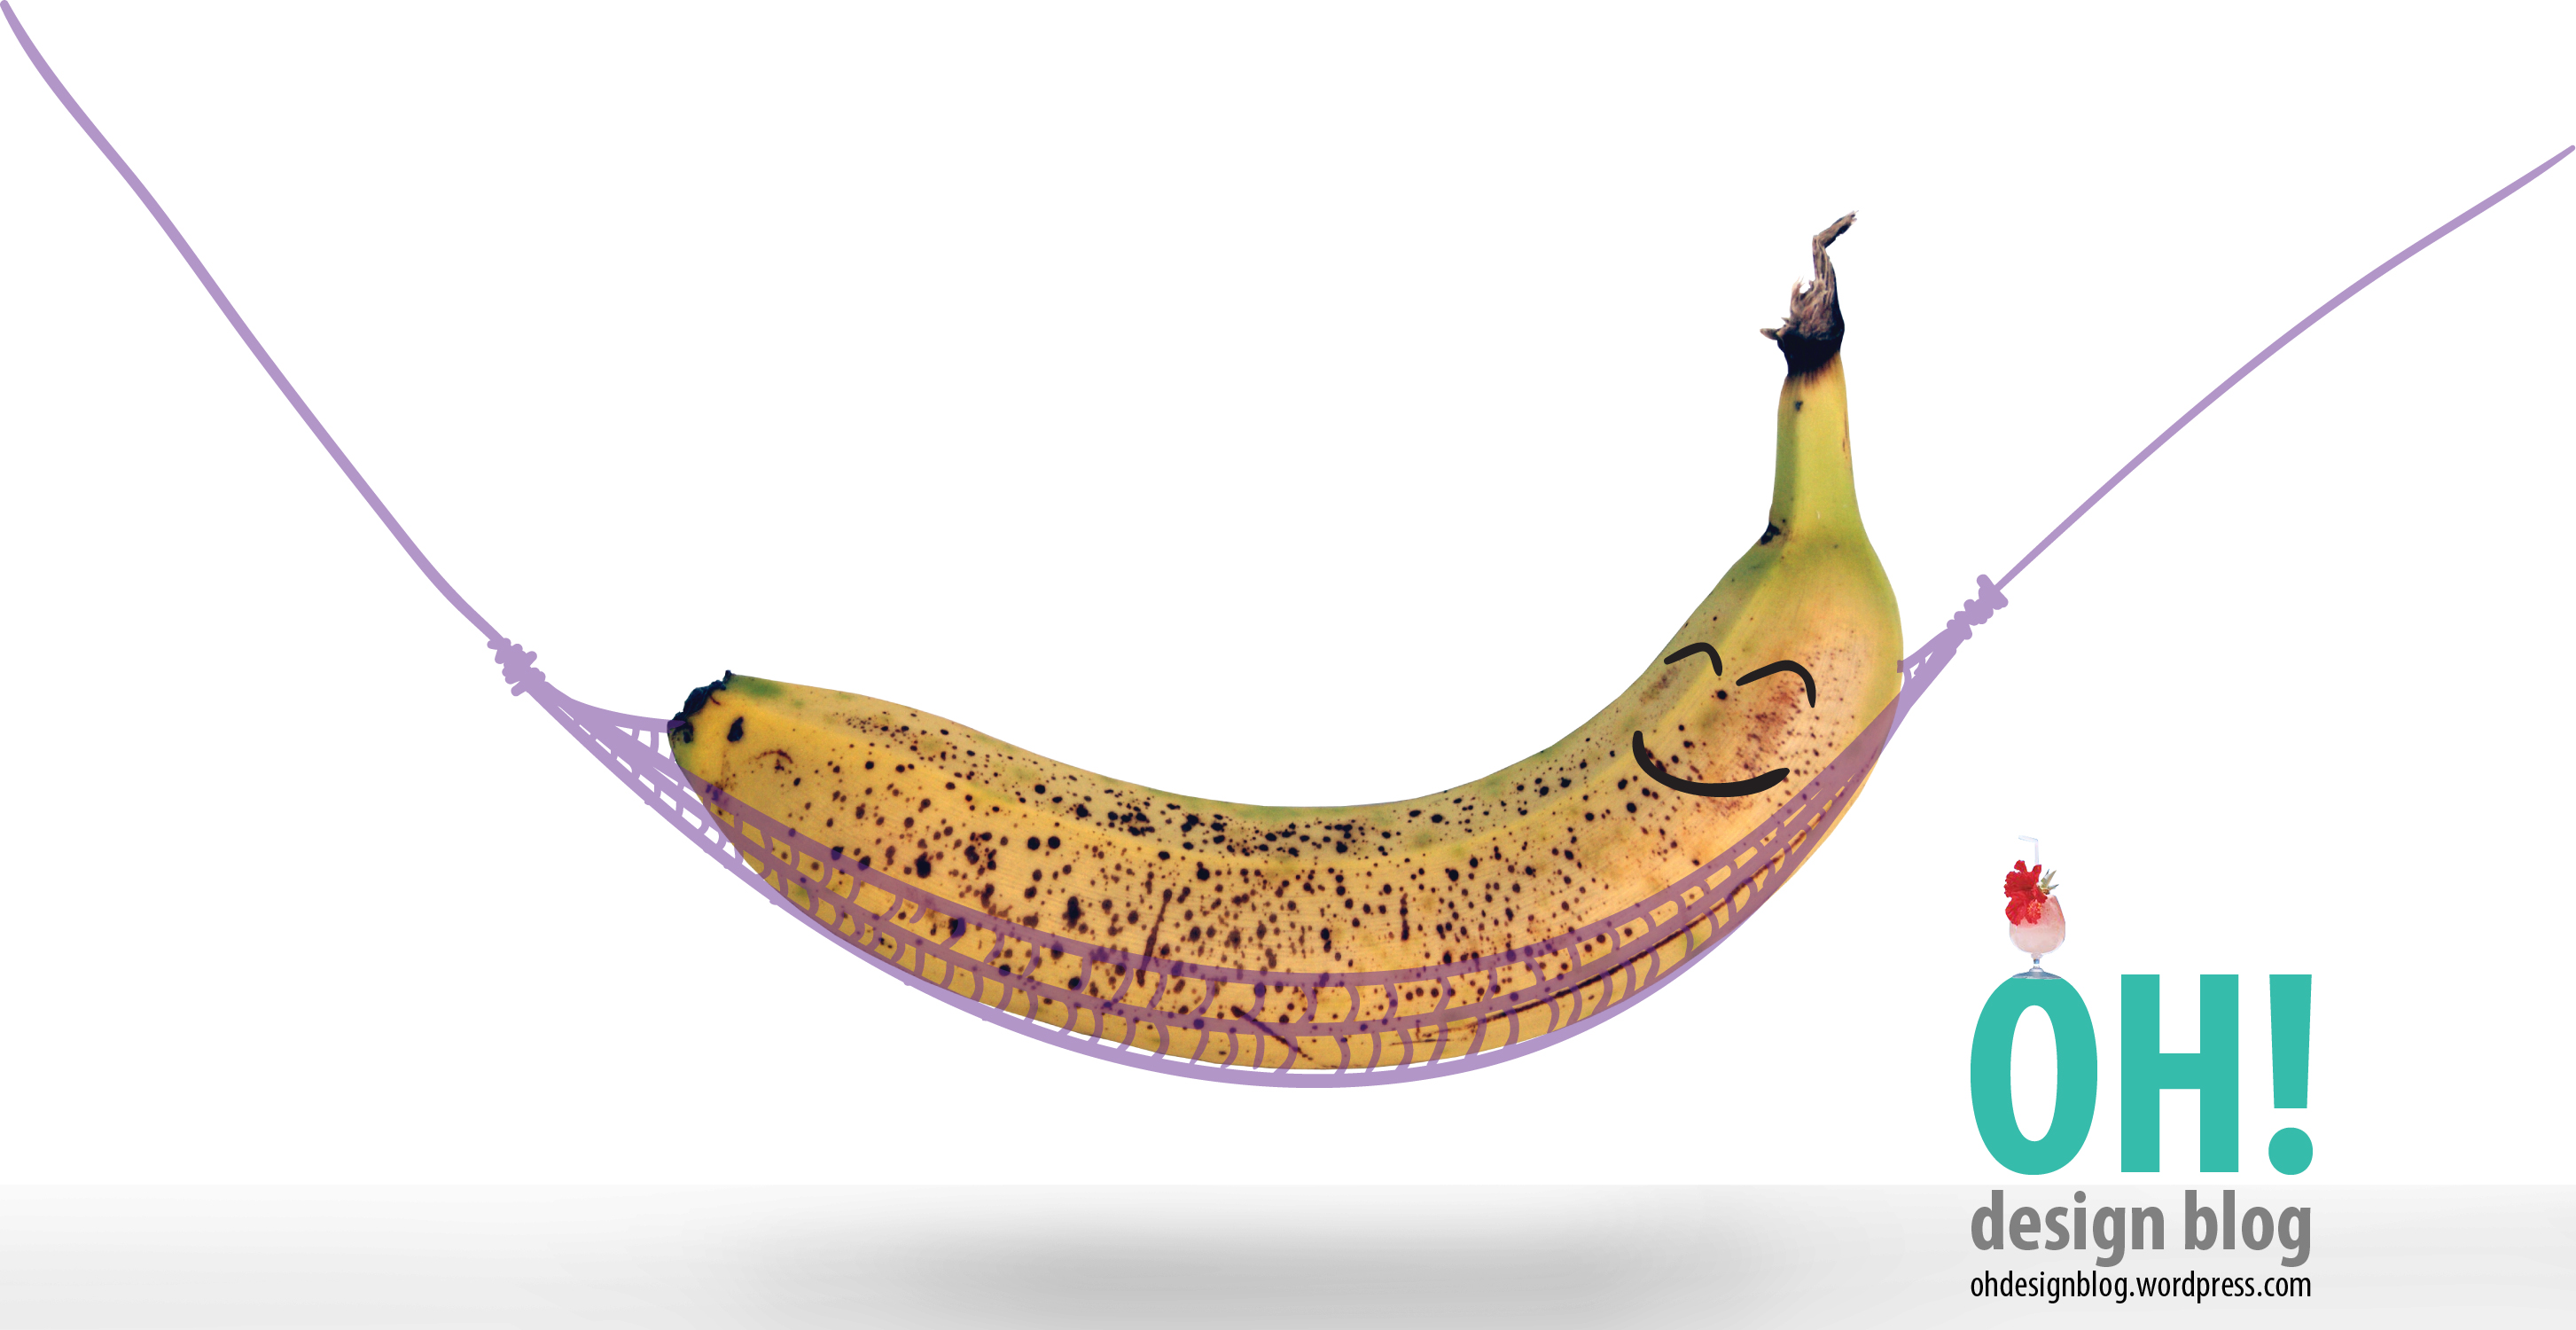 Medium image of banana hammock